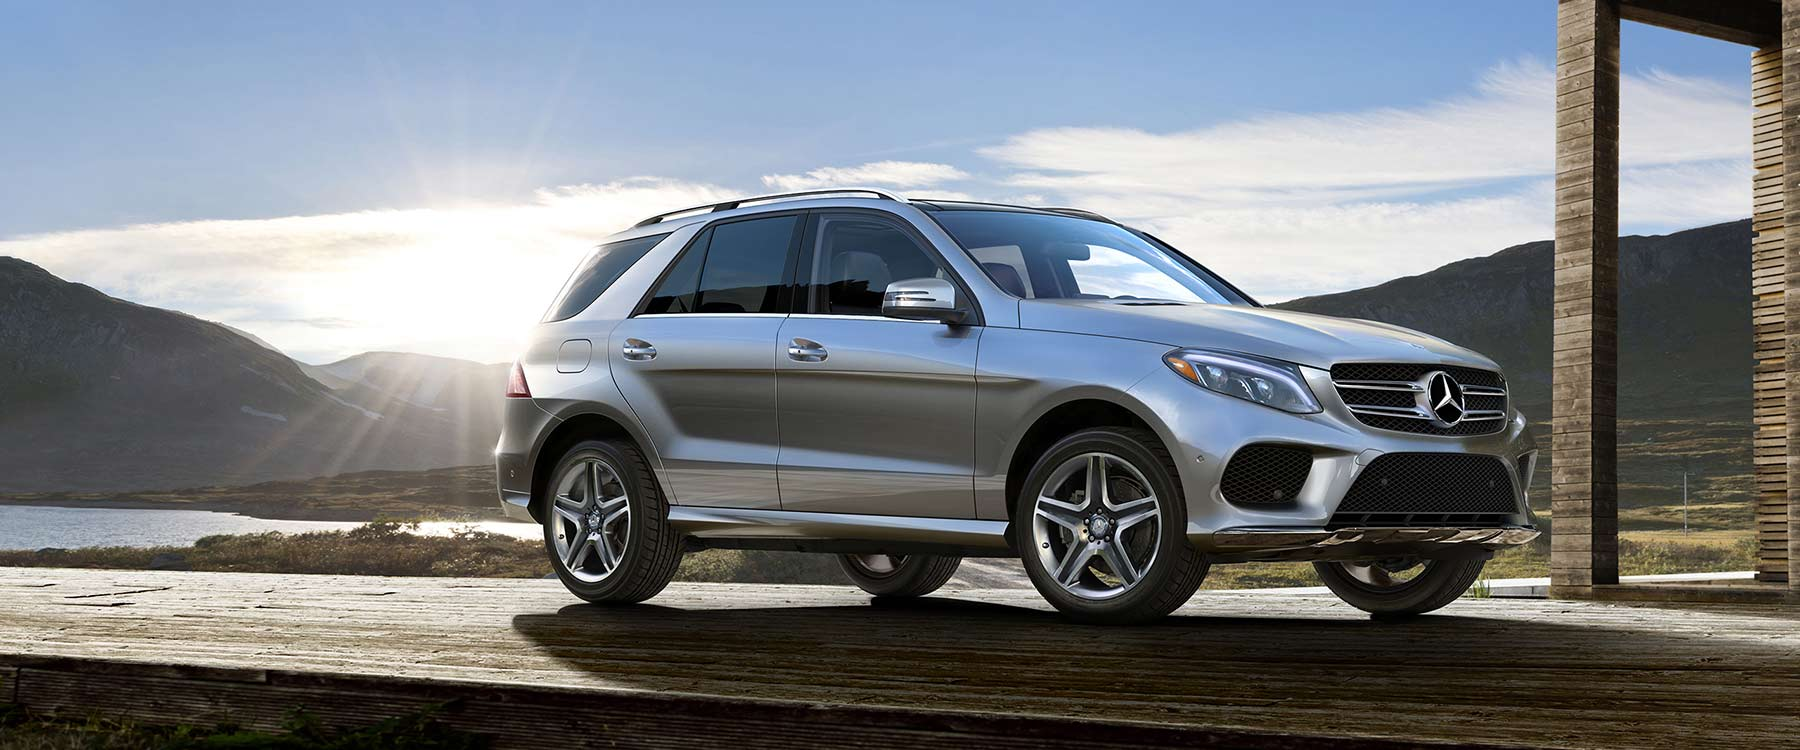 Meet The 2018 Mercedes Benz Gle 350 A Spacious And Capable Suv